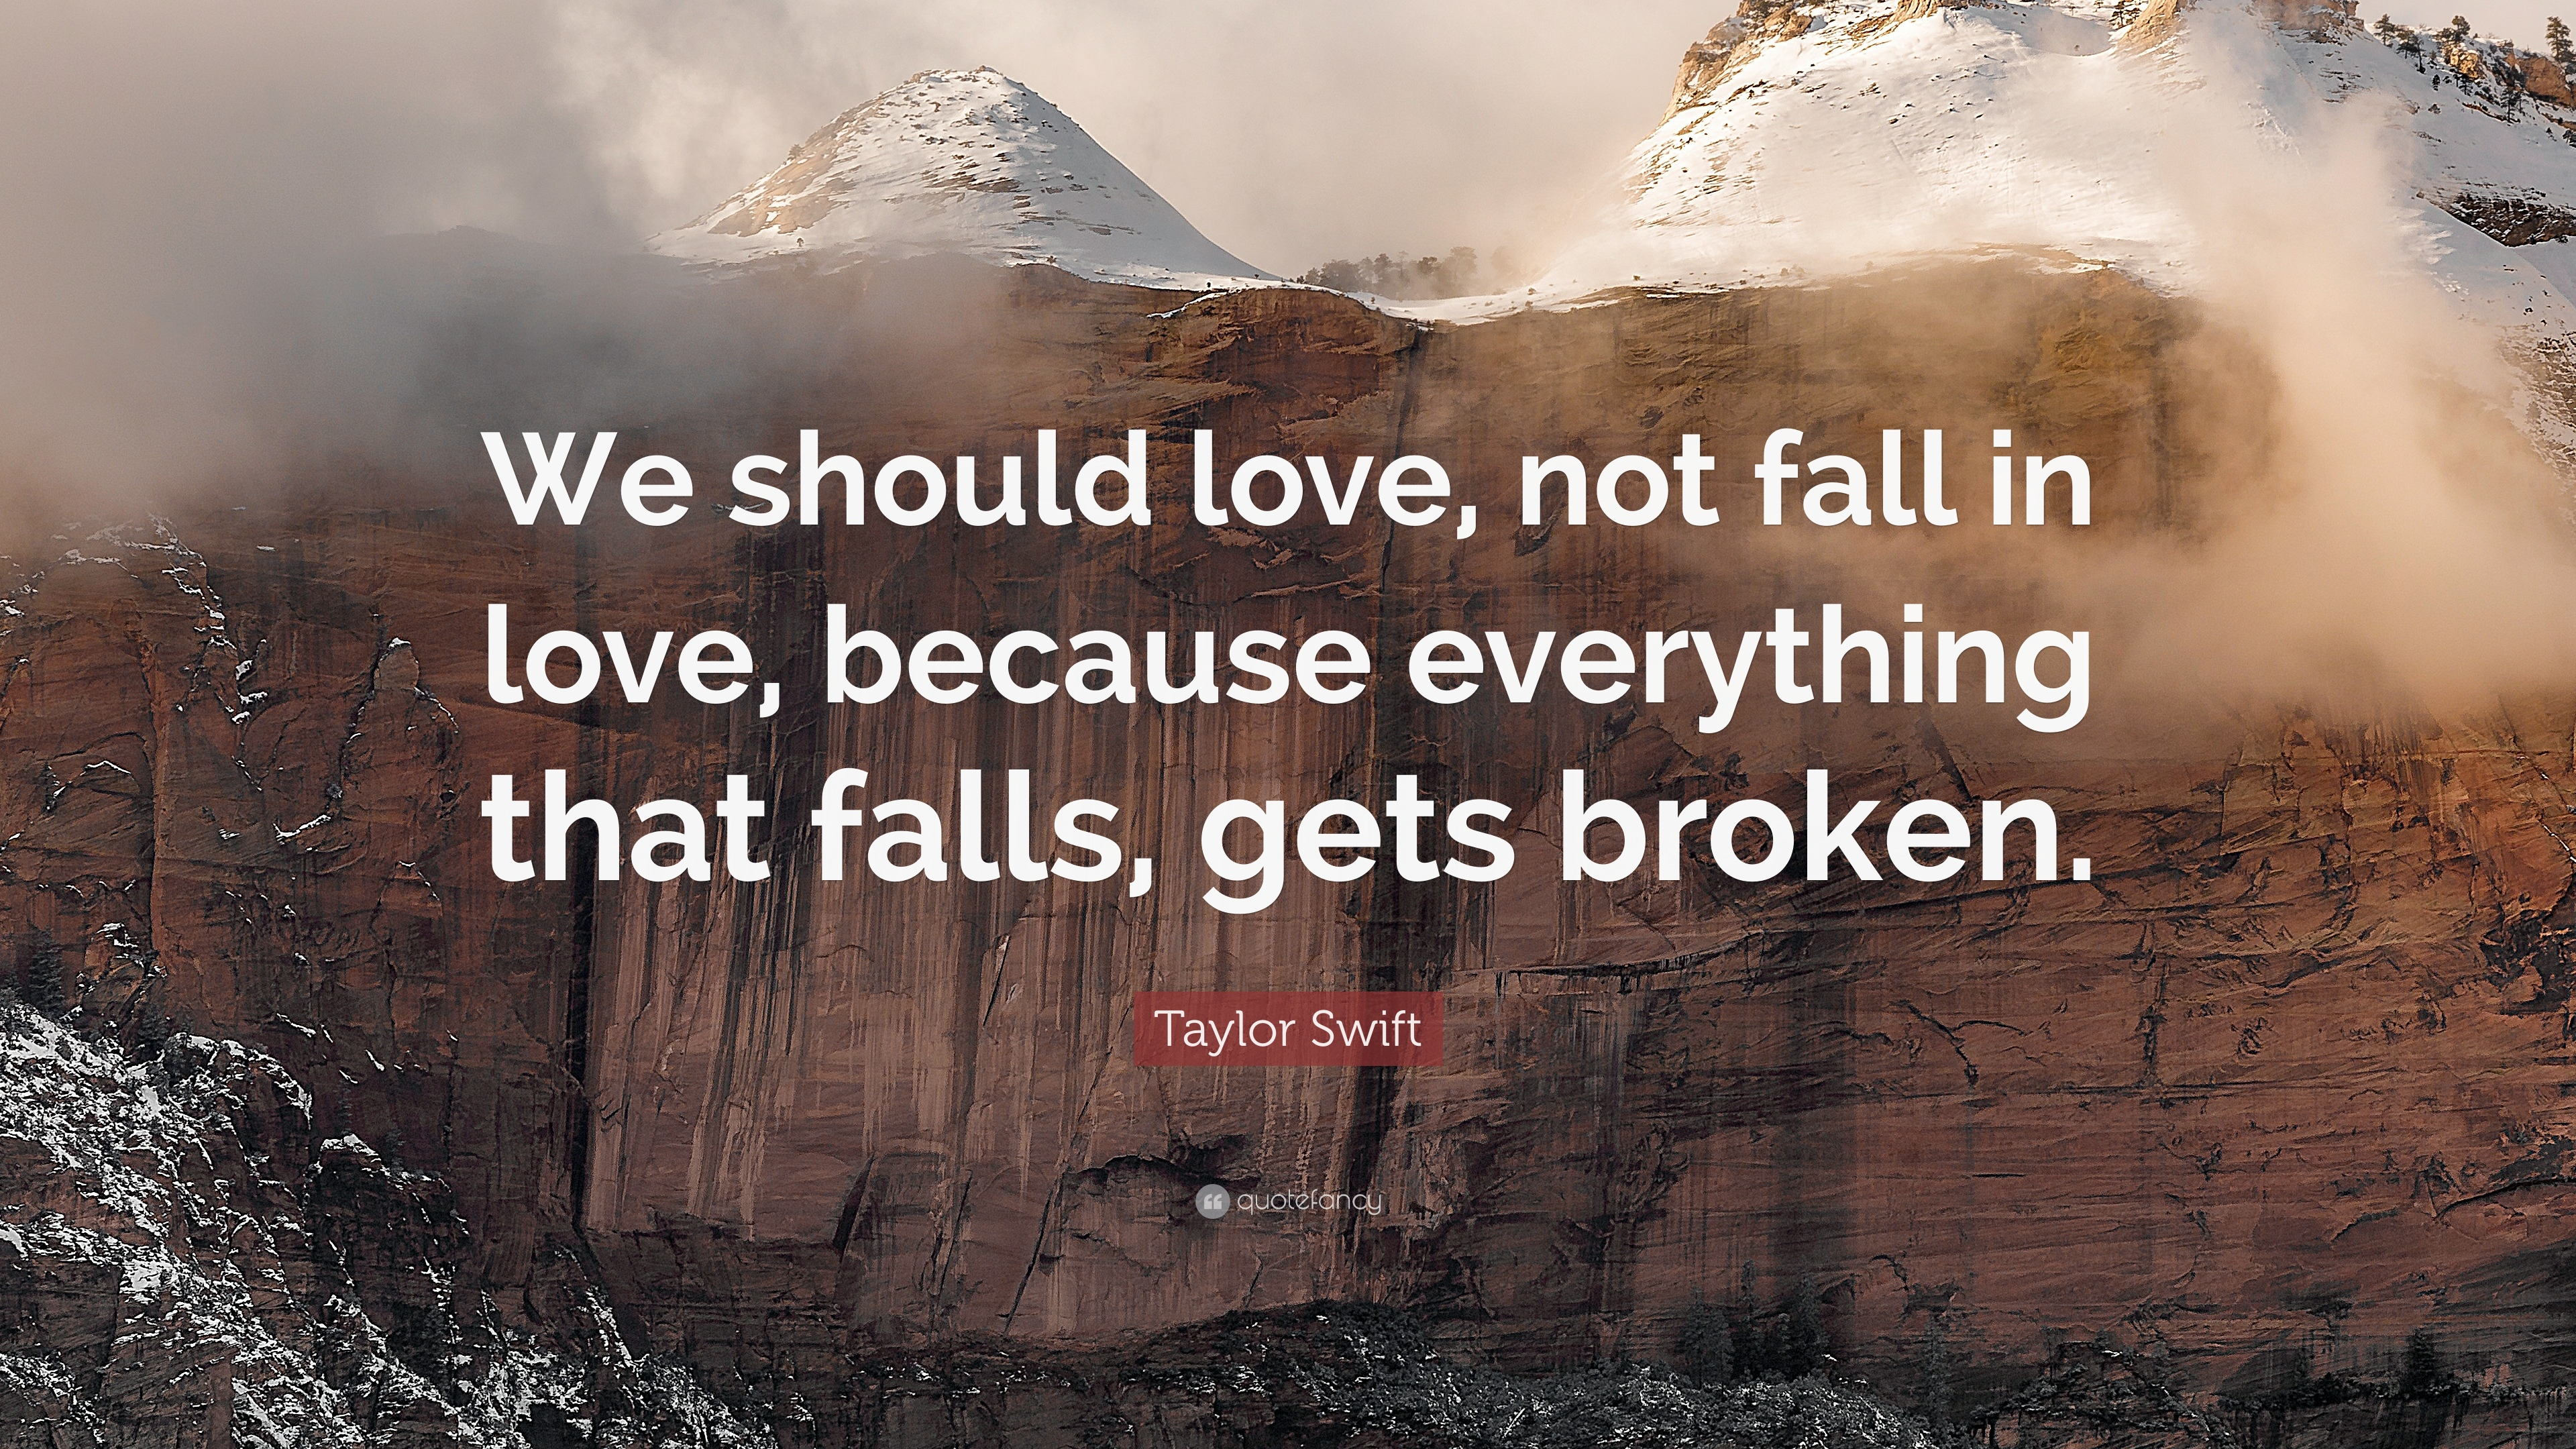 should we fall in love when we are students We should love, not fall in love, because everything that falls, gets broken dreamer inserida por pwendyp.